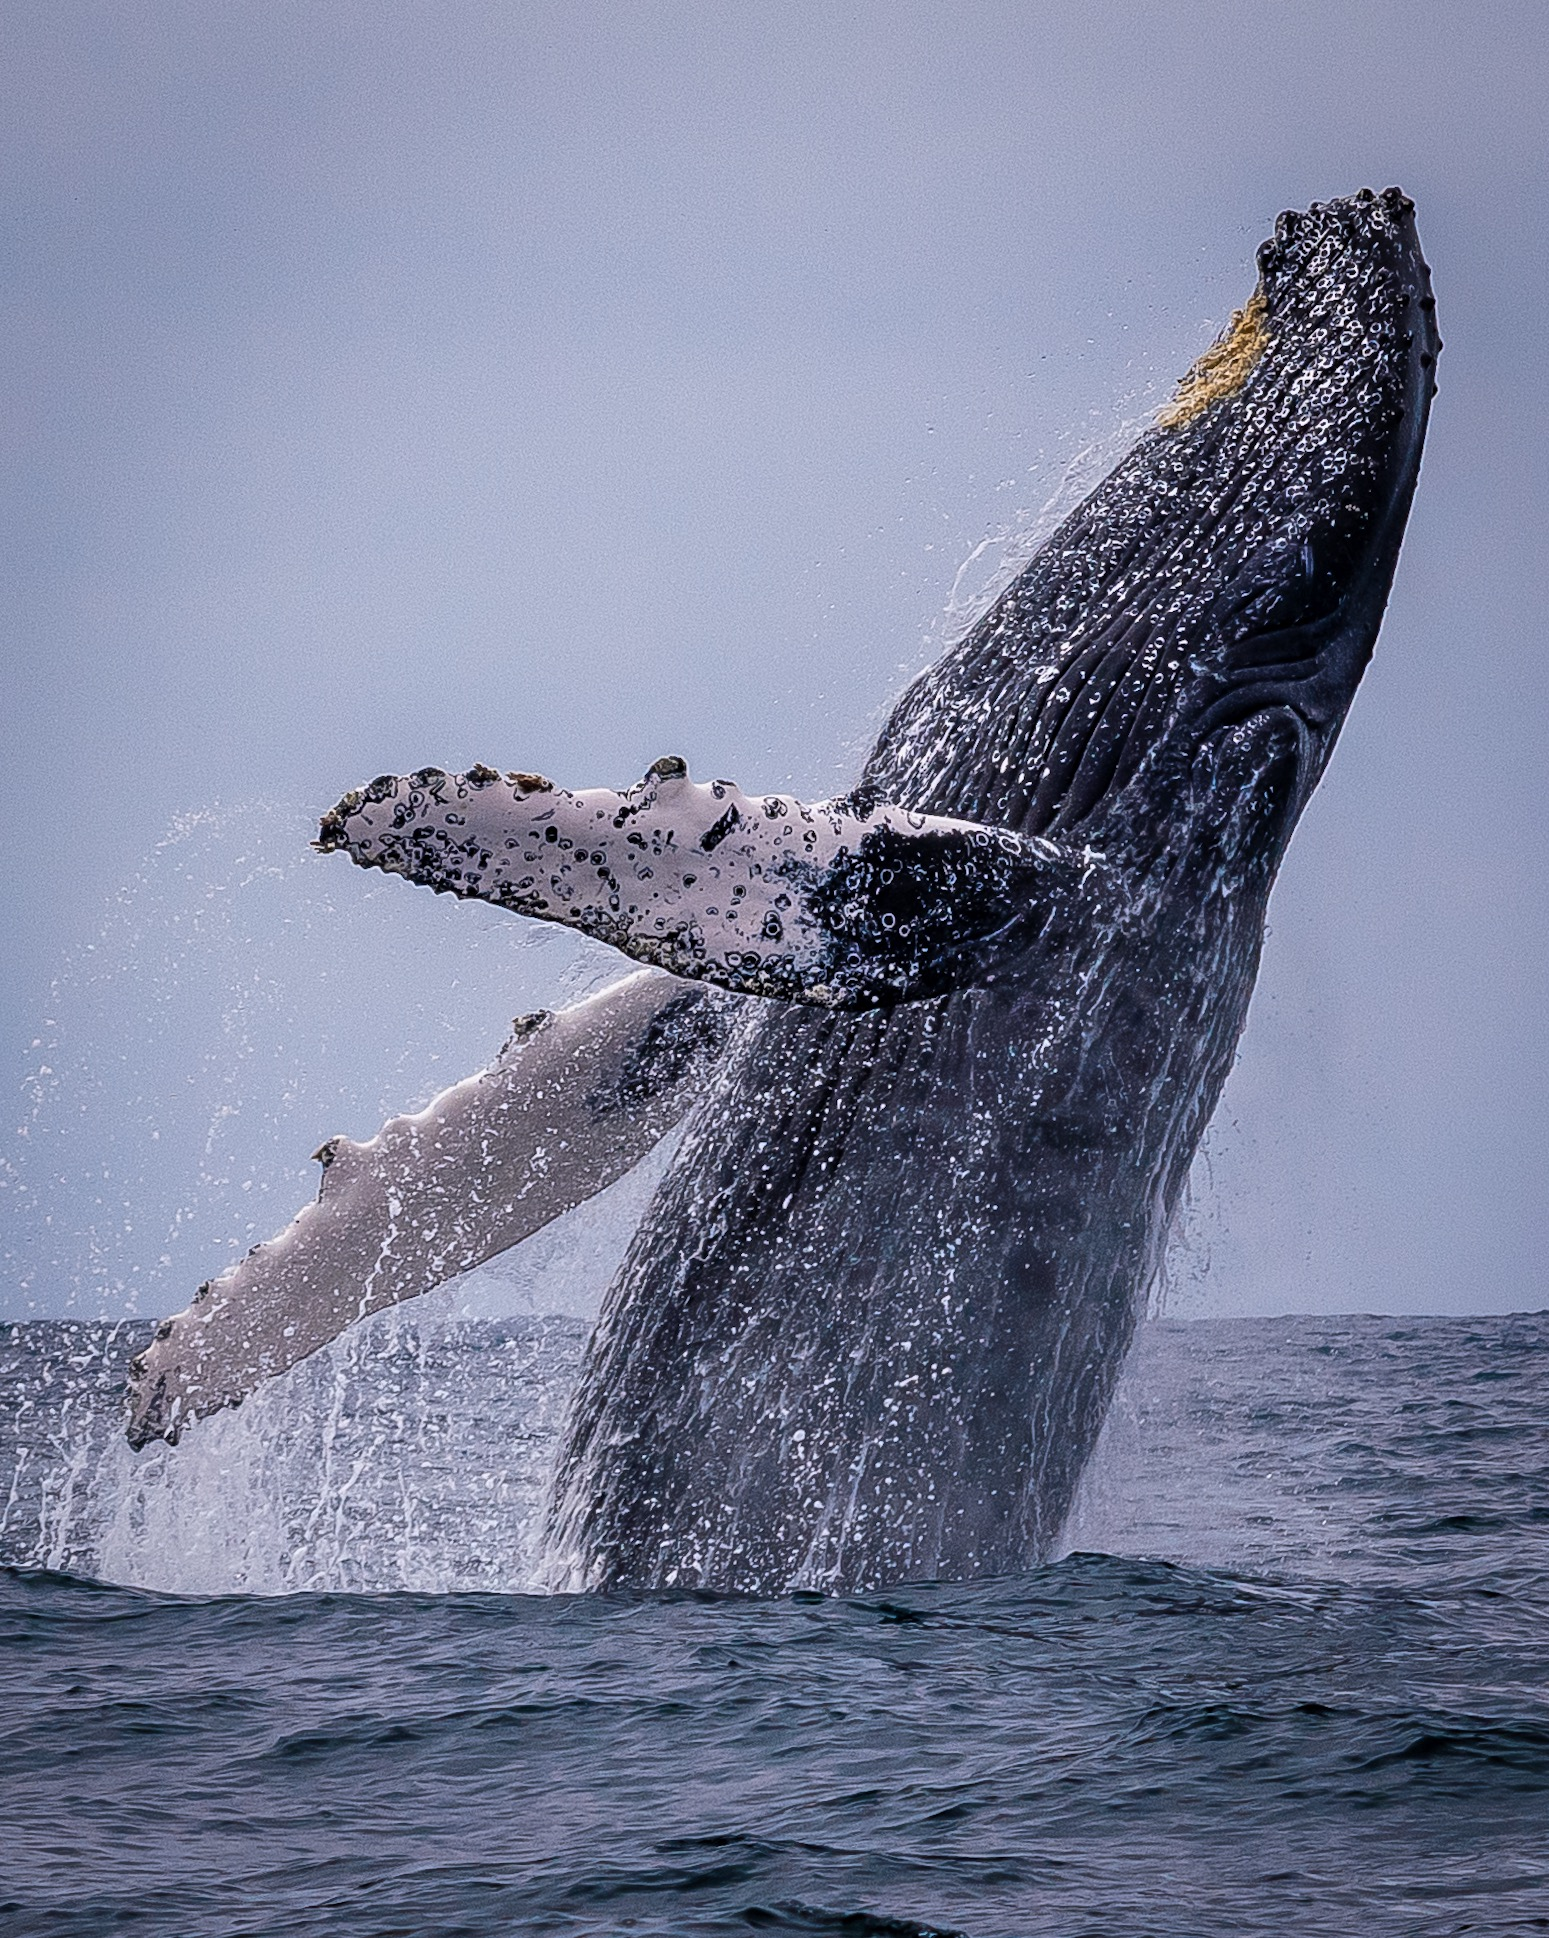 camps_international_rich_holt_humpback_whale